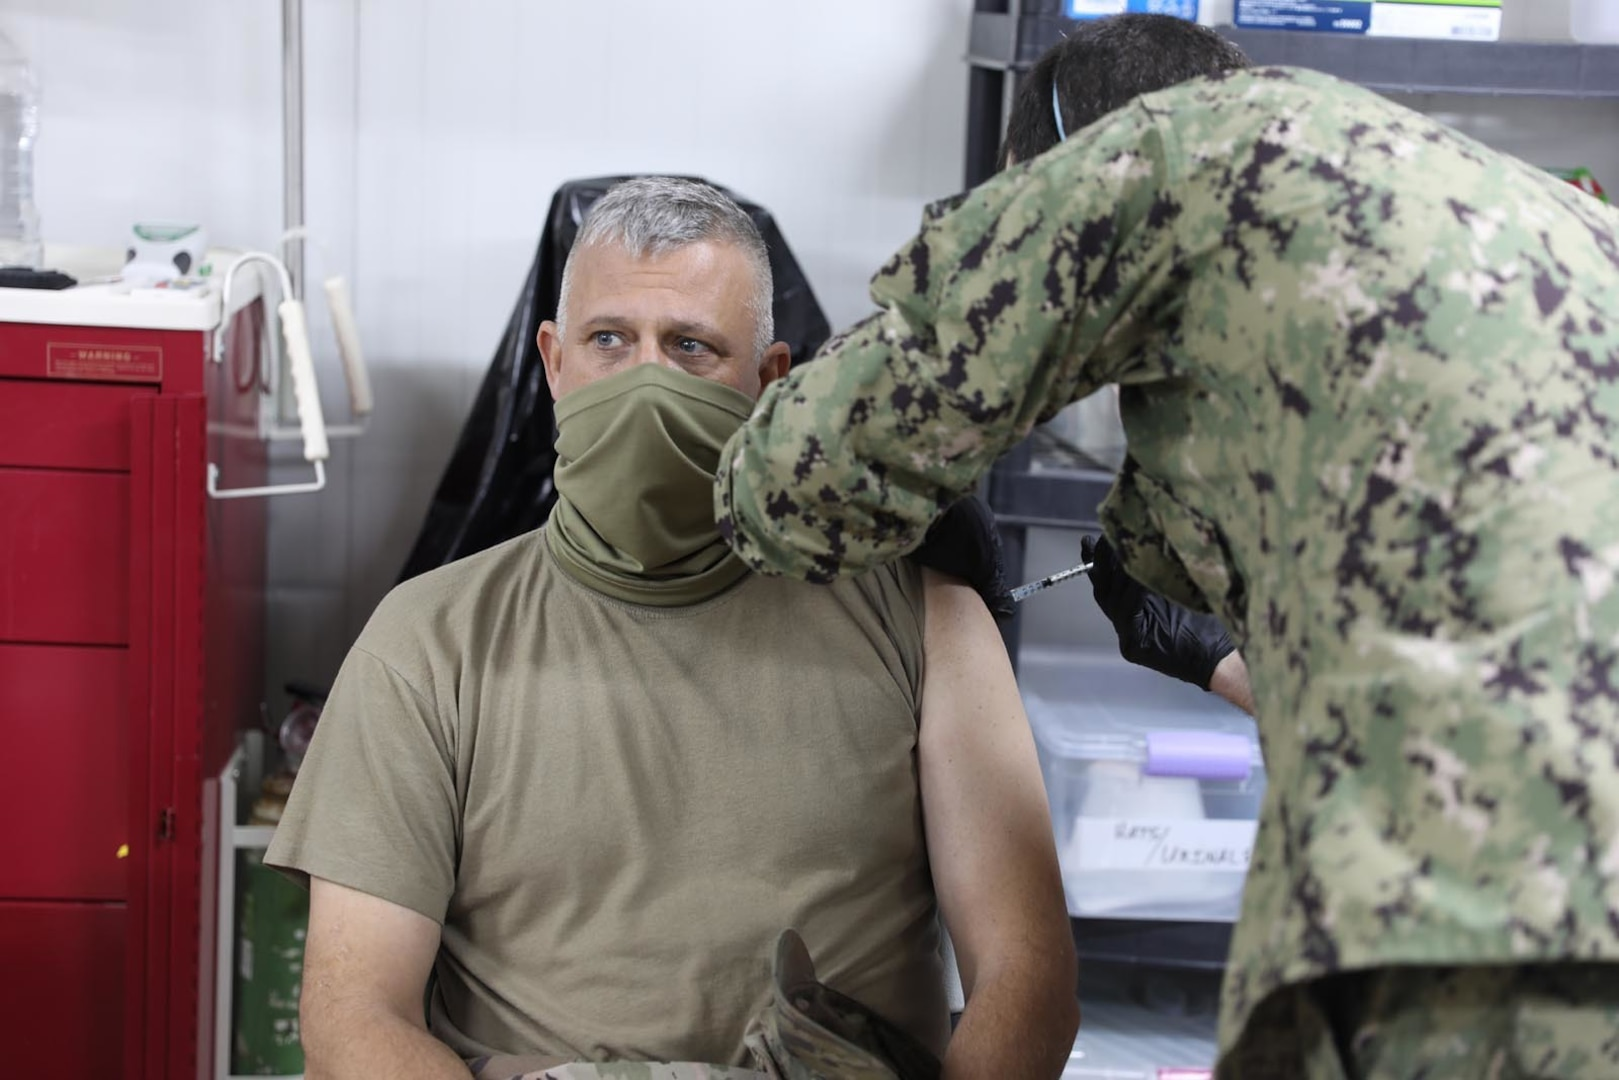 U.S. Army Col. Scott Desormeaux, brigade commander of the Louisiana National Guard's 256th Infantry Brigade Combat Team, receives the COVID-19 vaccine at Erbil Air Base, Iraq, Jan.18, 2021. Combined Joint Task Force-Operation Inherent Resolve (CJTF-OIR) received 300 vaccines for the Combined Joint Operations Area, 110 of those were administered at EAB.